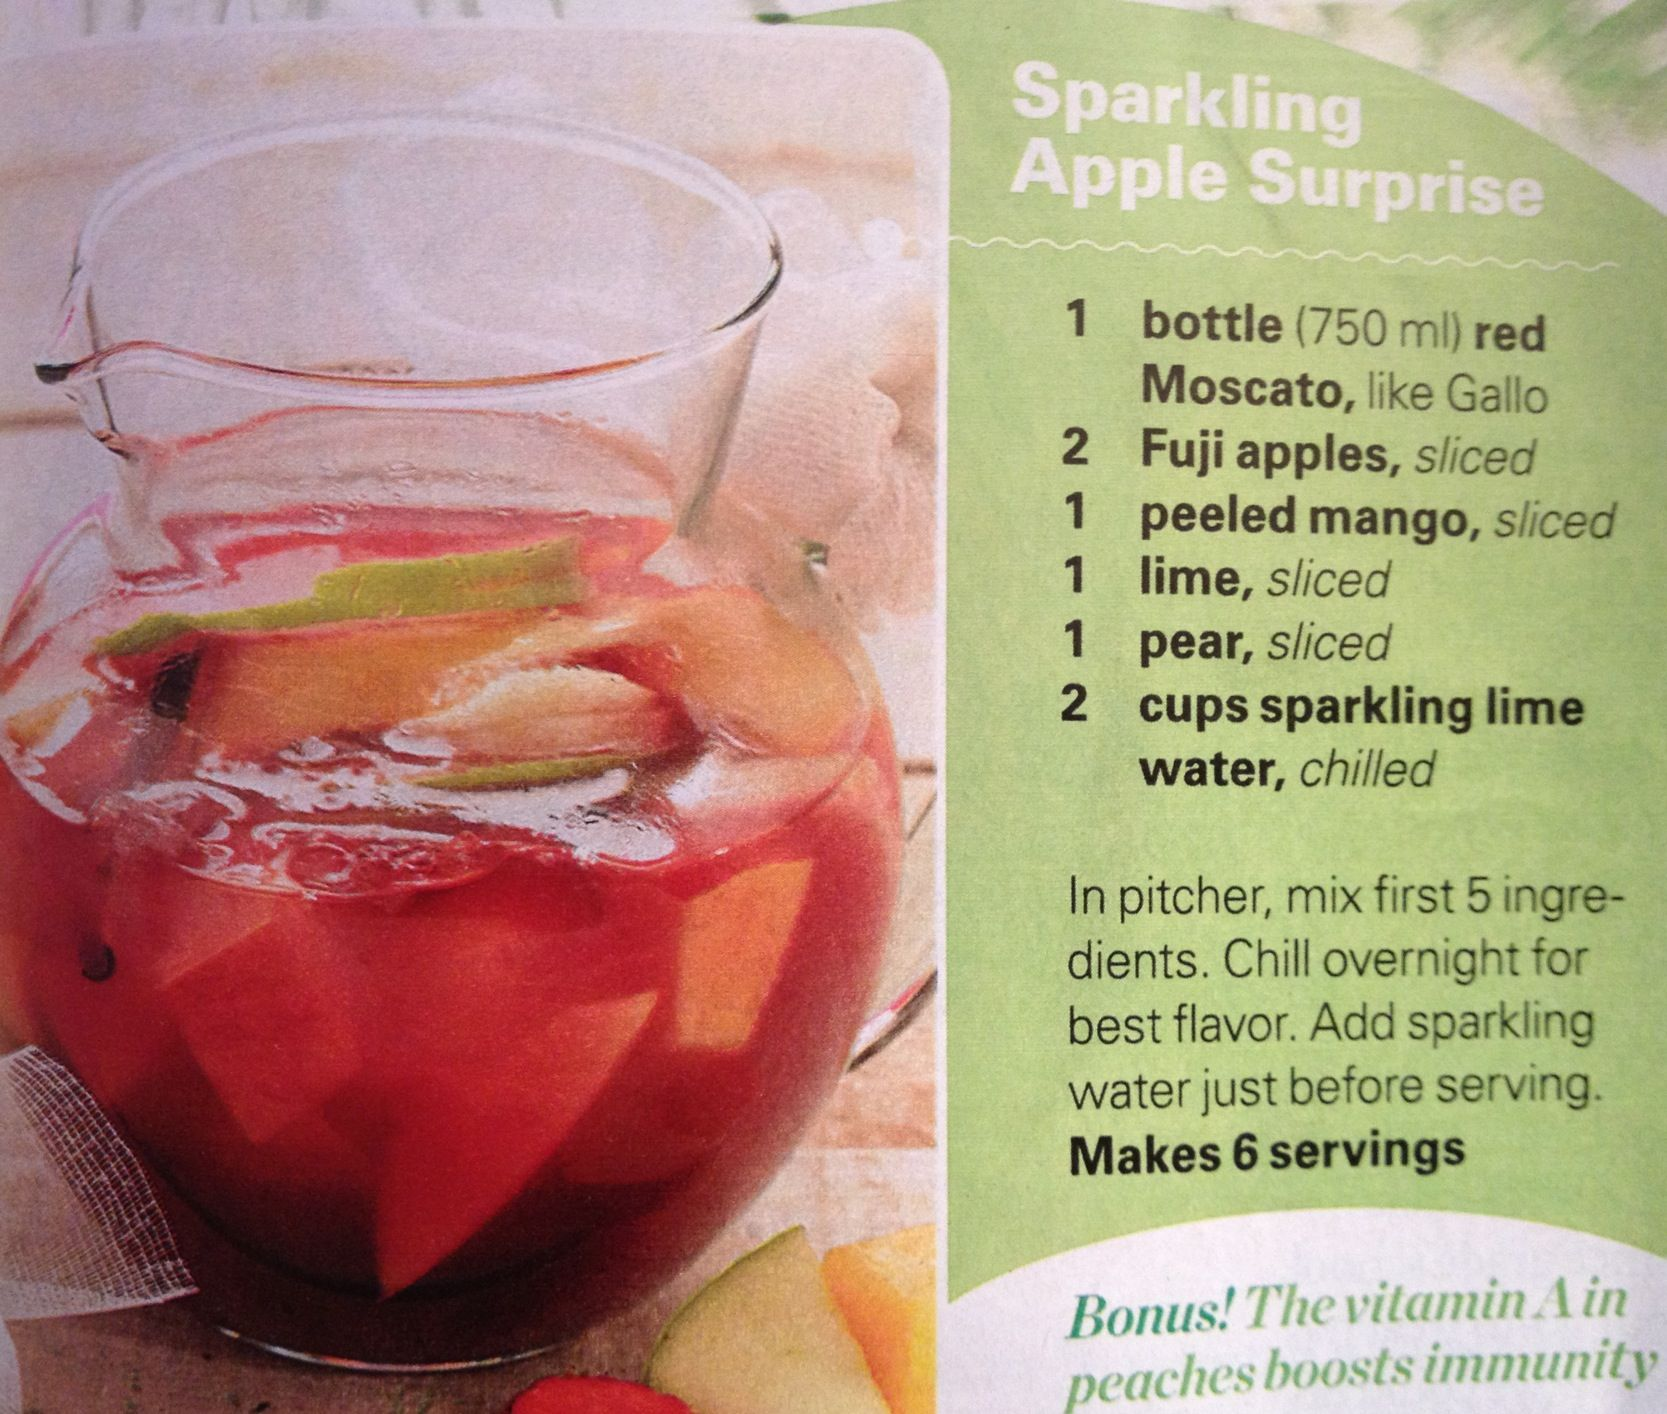 Here's a great excuse to make a batch of sangria.  Wine is supercharged with Resveratrol, which increases the activity of cells' energy-producing engines.  Translation... it increases stamina and endurance during physical tasks by 180%, can reduce formation of new fat tissue by up to 80%, and reduces the risk of weight gain, diabetes and heart disease!!